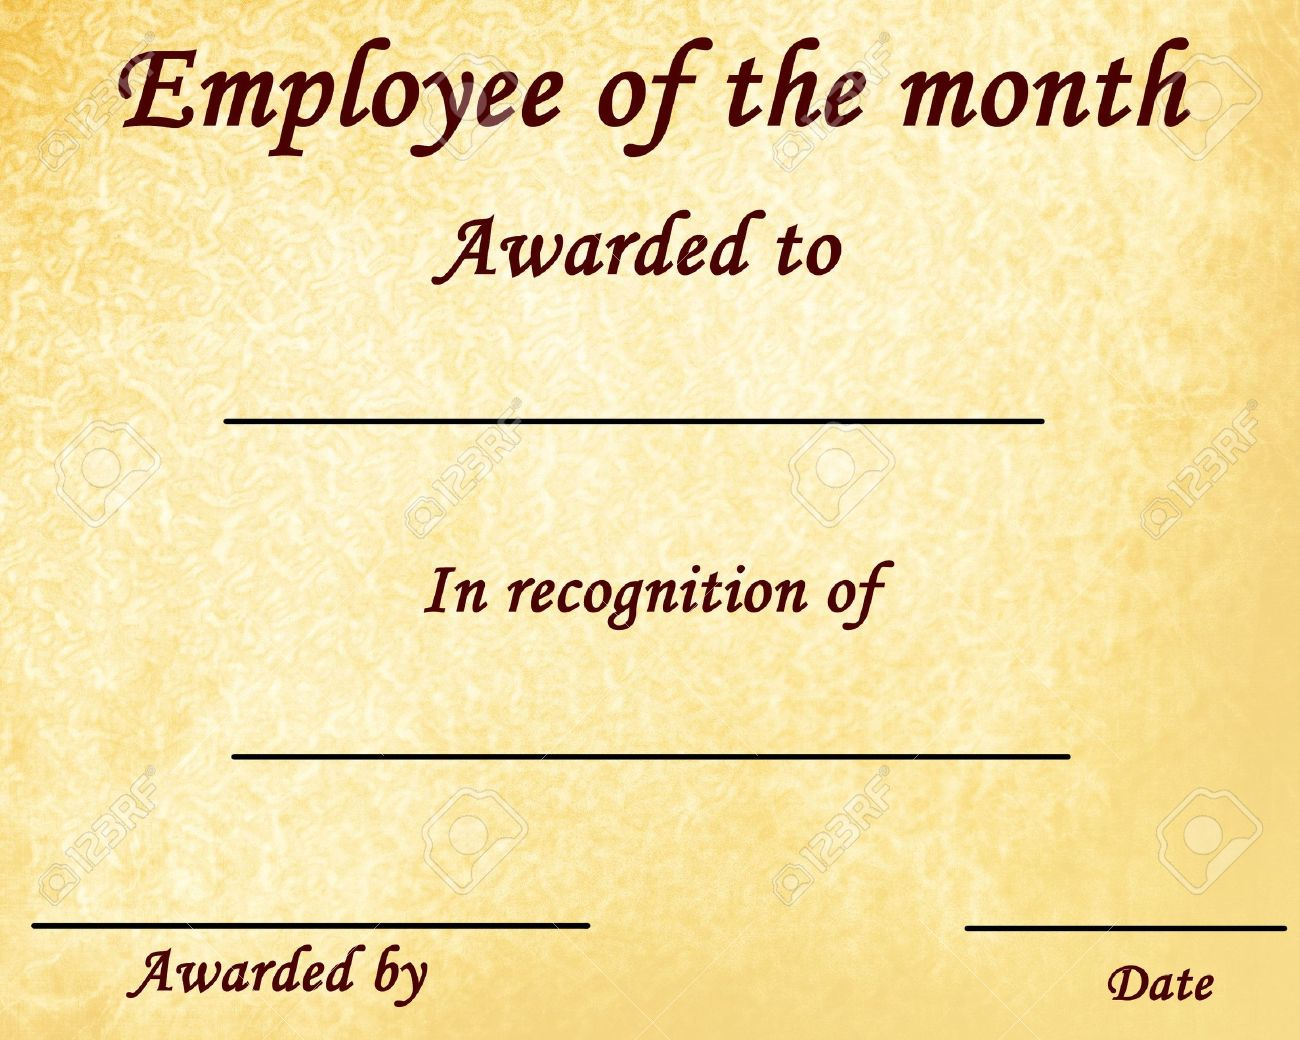 Employee Of The Month Certificate With Some Stains Stock Photo ...